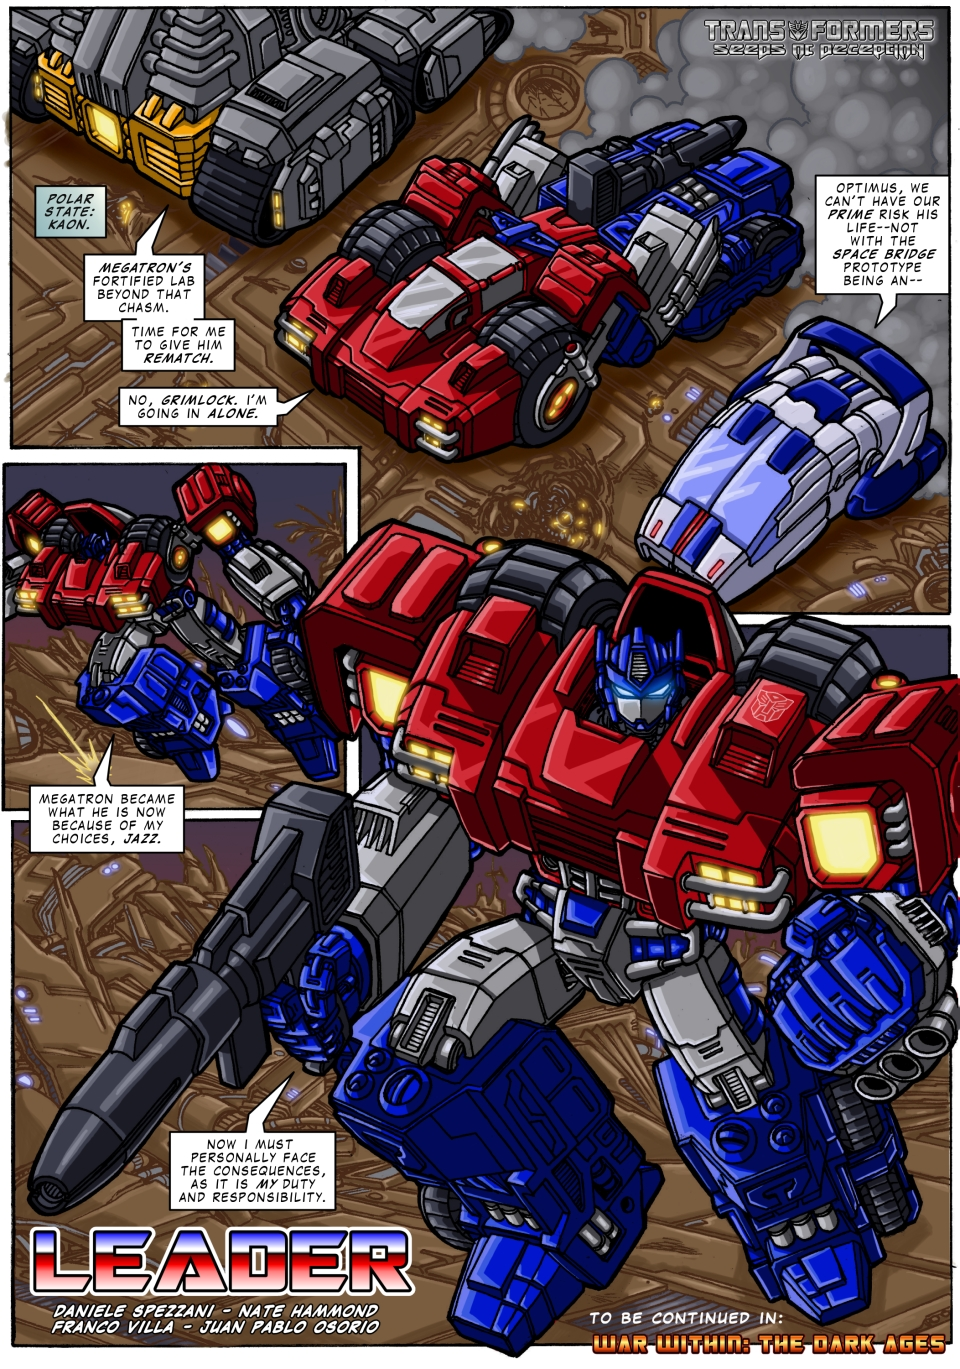 The Transformers - Leader